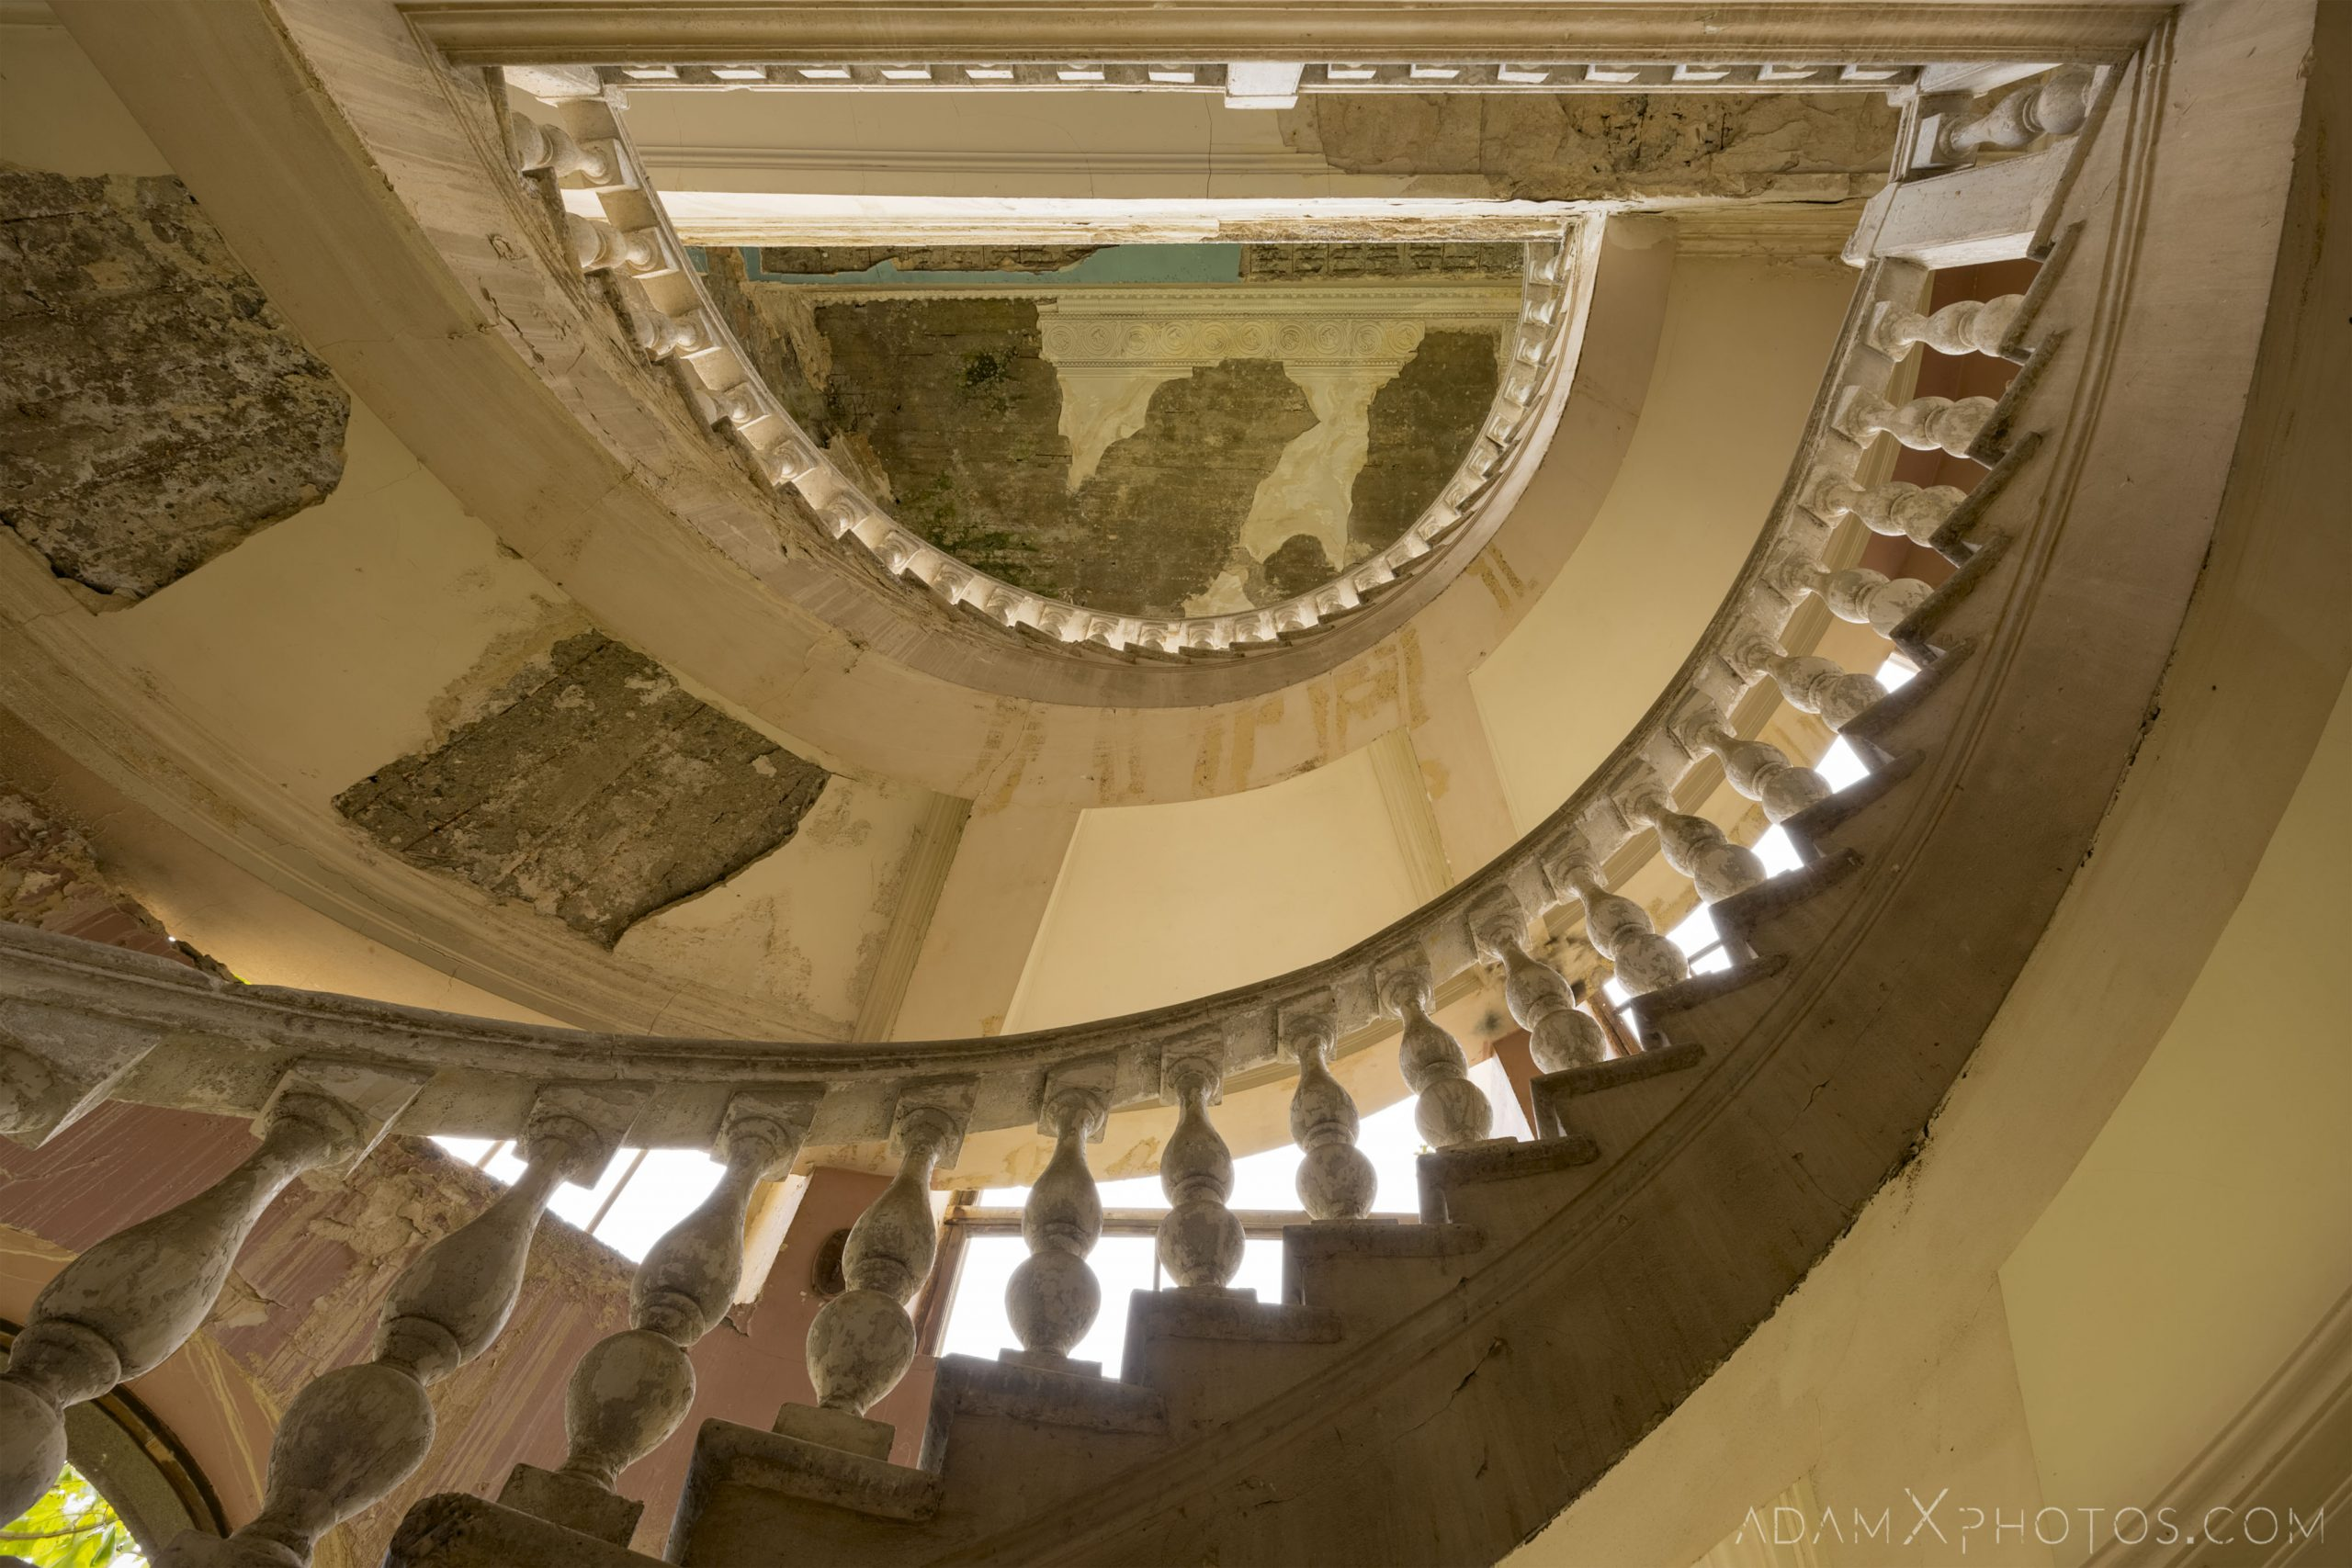 ornate spiral stairs staircase looking up Sanatorium Imereti Tskaltubo Georgia Soviet era Adam X Urbex Urban Exploration 2018 Abandoned Access History decay ruins lost forgotten derelict location creepy haunting eerie security